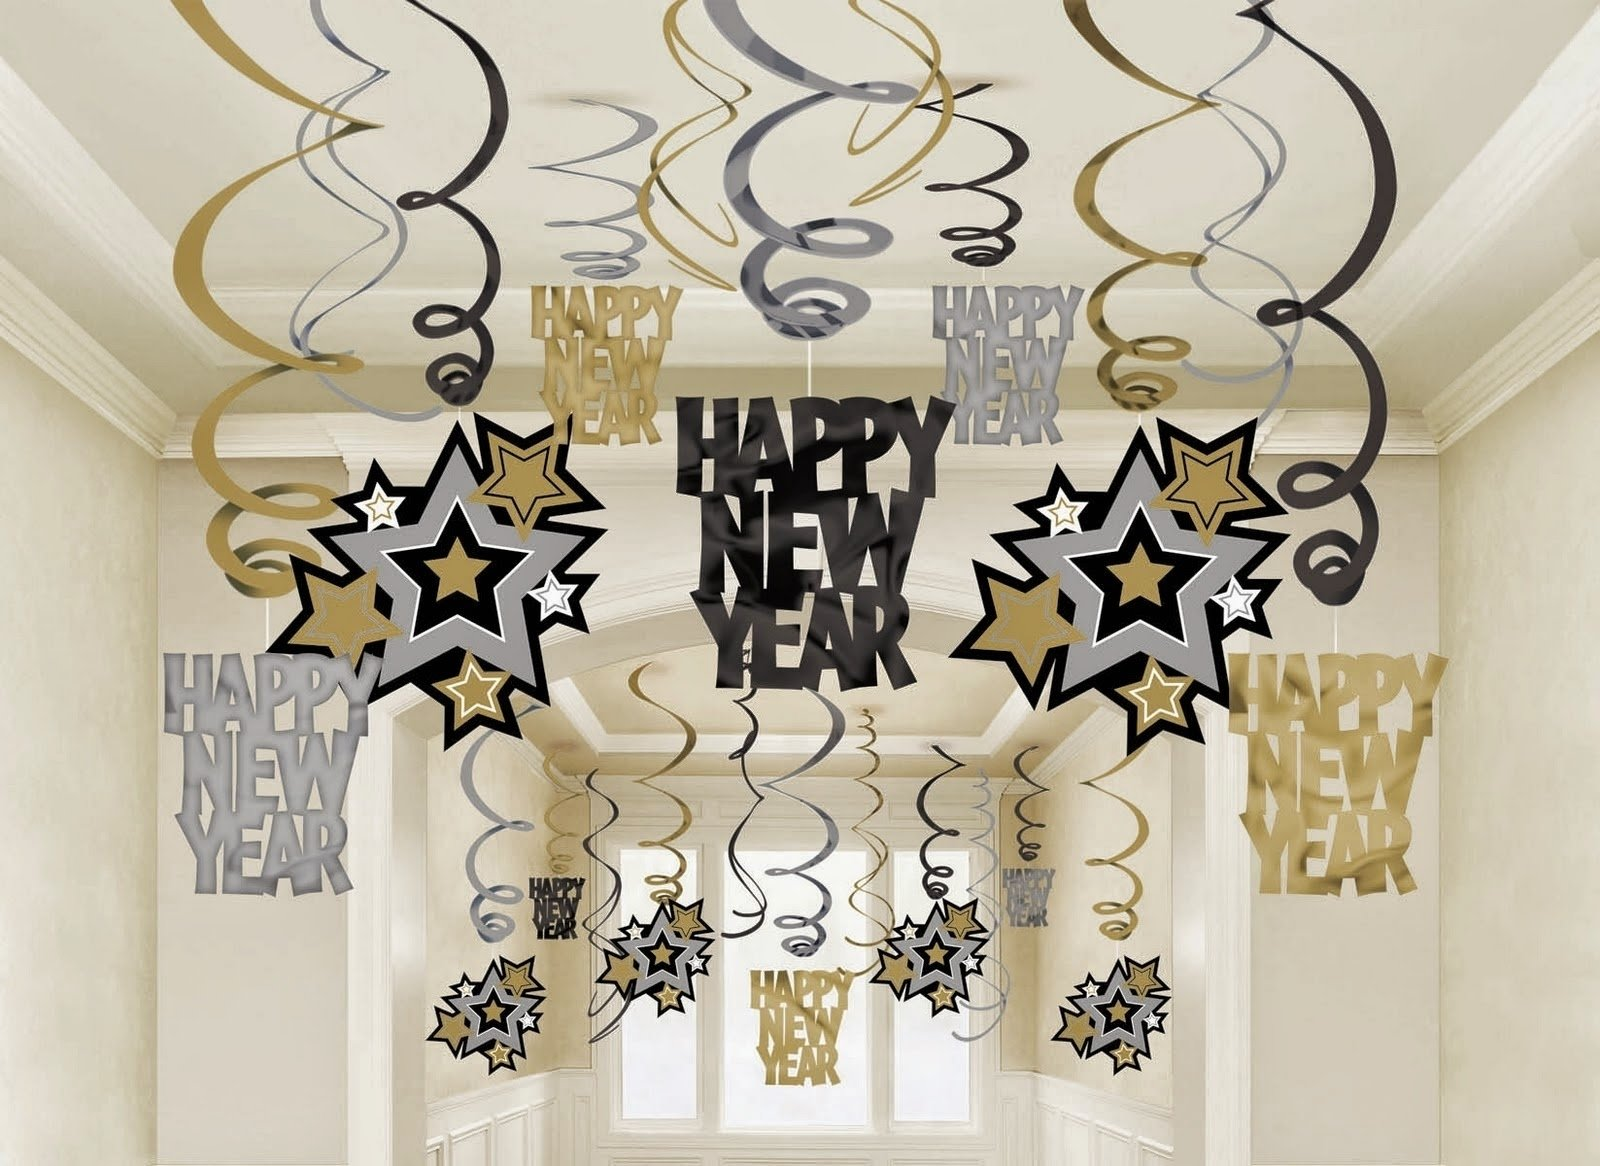 10 Pretty New Years Eve Decorations Ideas new years eve home party decorating ideas paris design agenda 3 2021